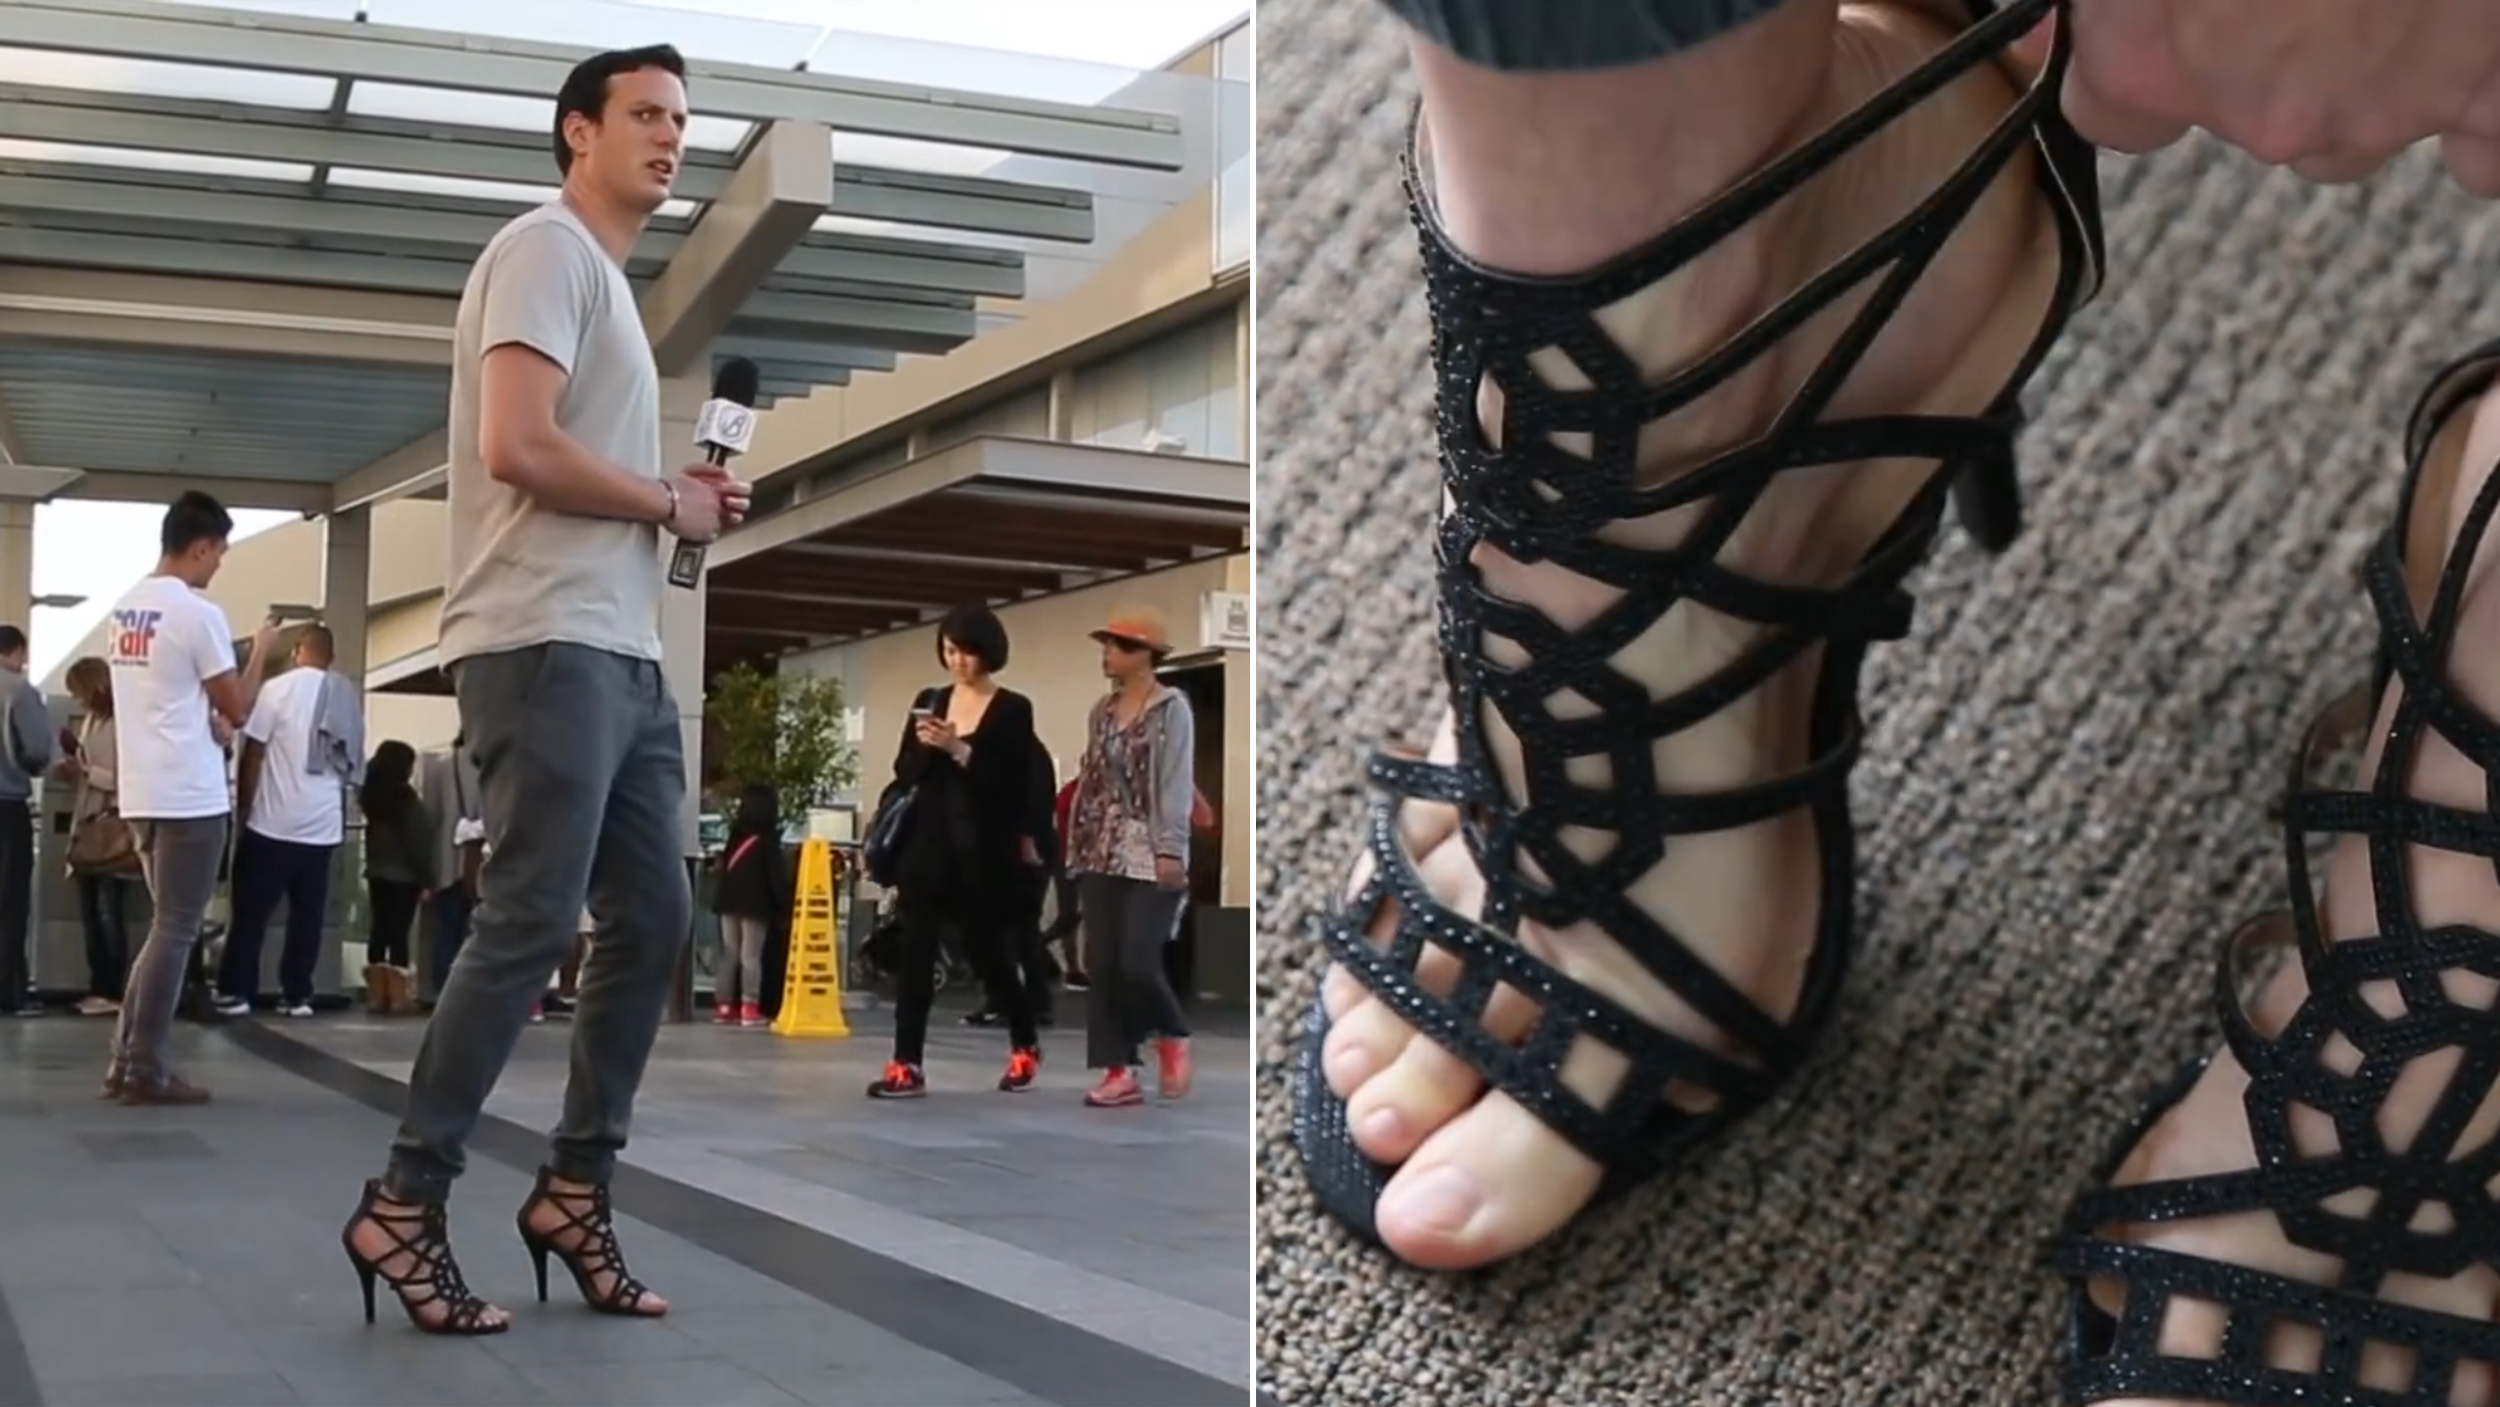 Man tries wearing high heels for a day, learns it's hard - TODAY.com